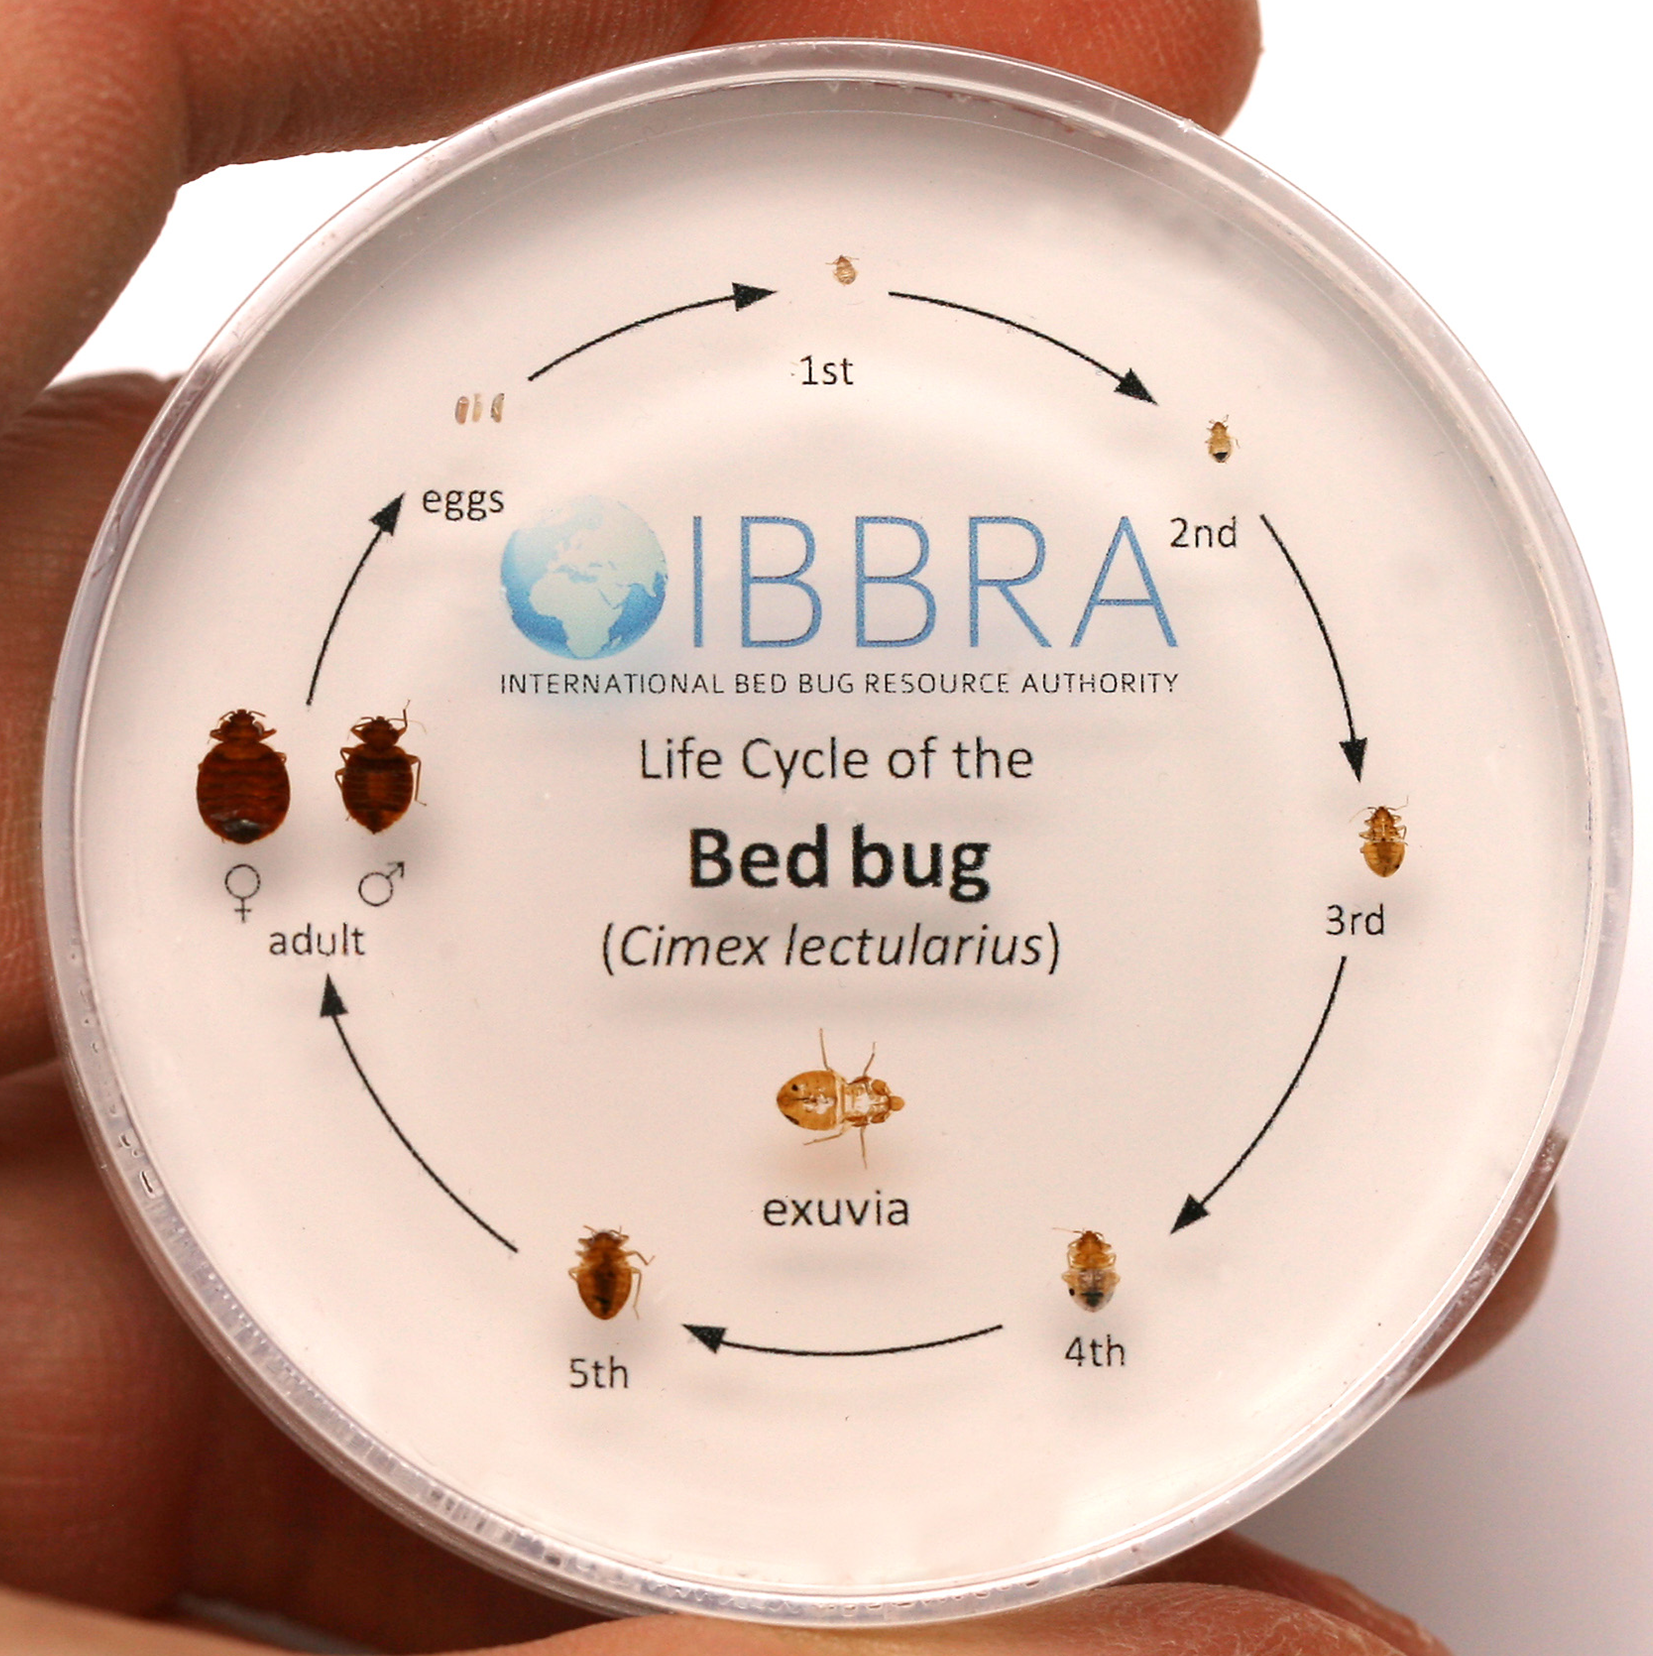 Life Cycle Of A Bed Bug. Bed Bugs Mistaken Identity   IBBRA